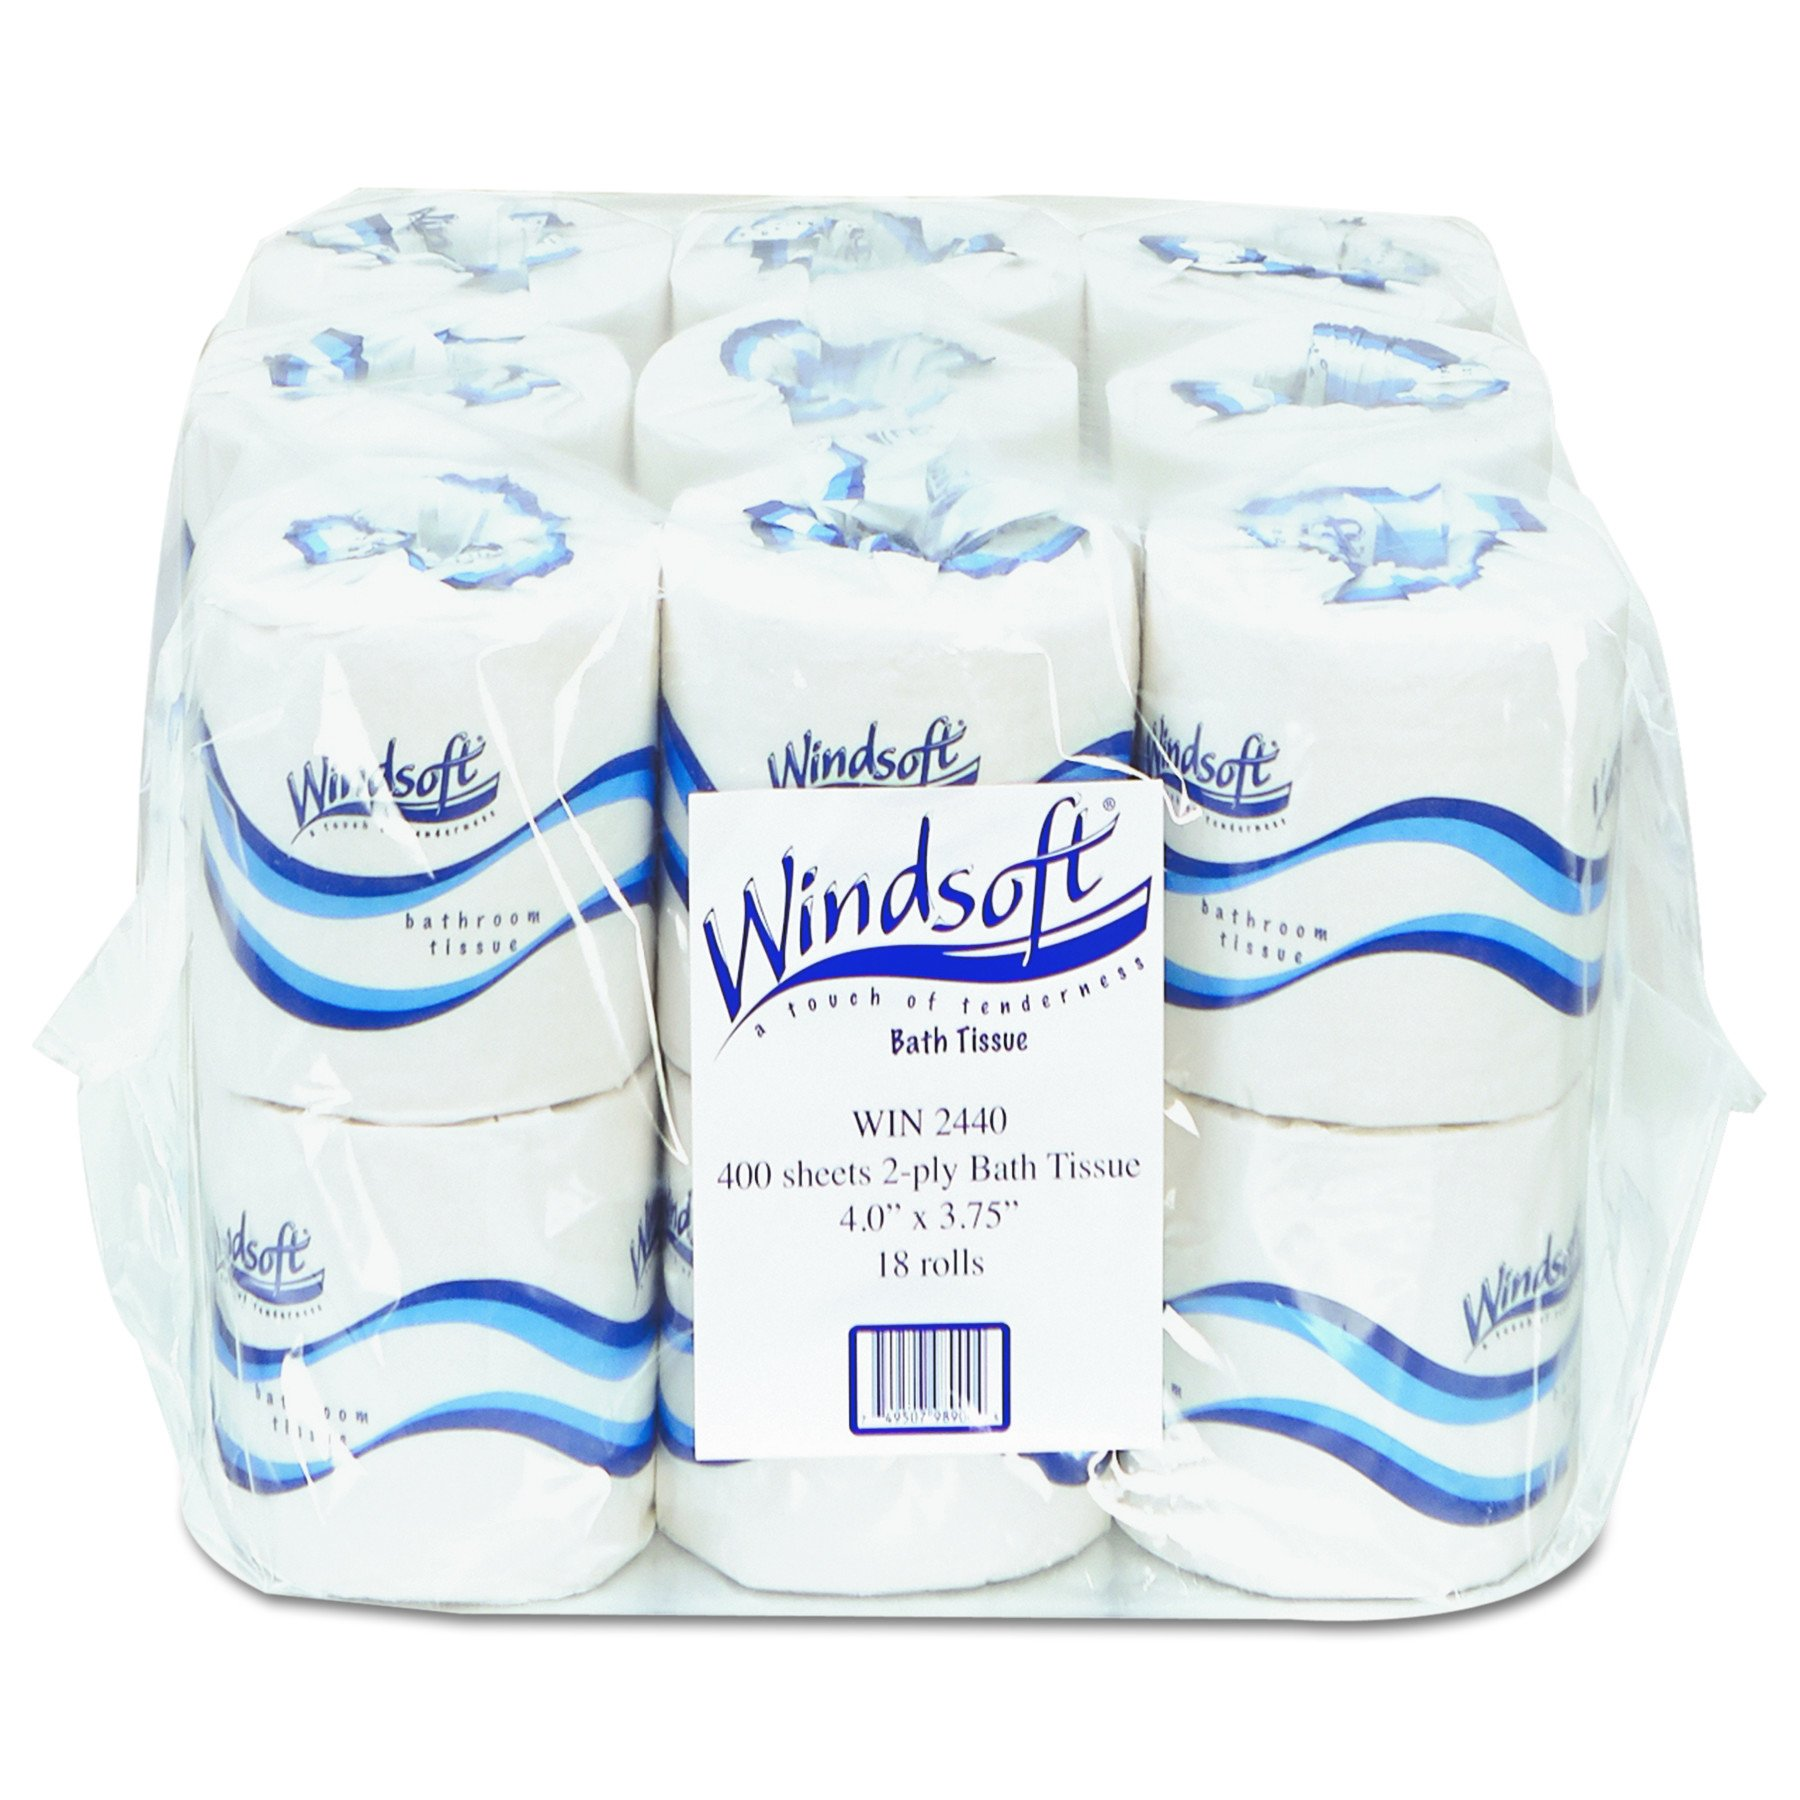 Windsoft WIN 2440 Embossed Bath Tissue, 2-Ply, White (Pack of 18)